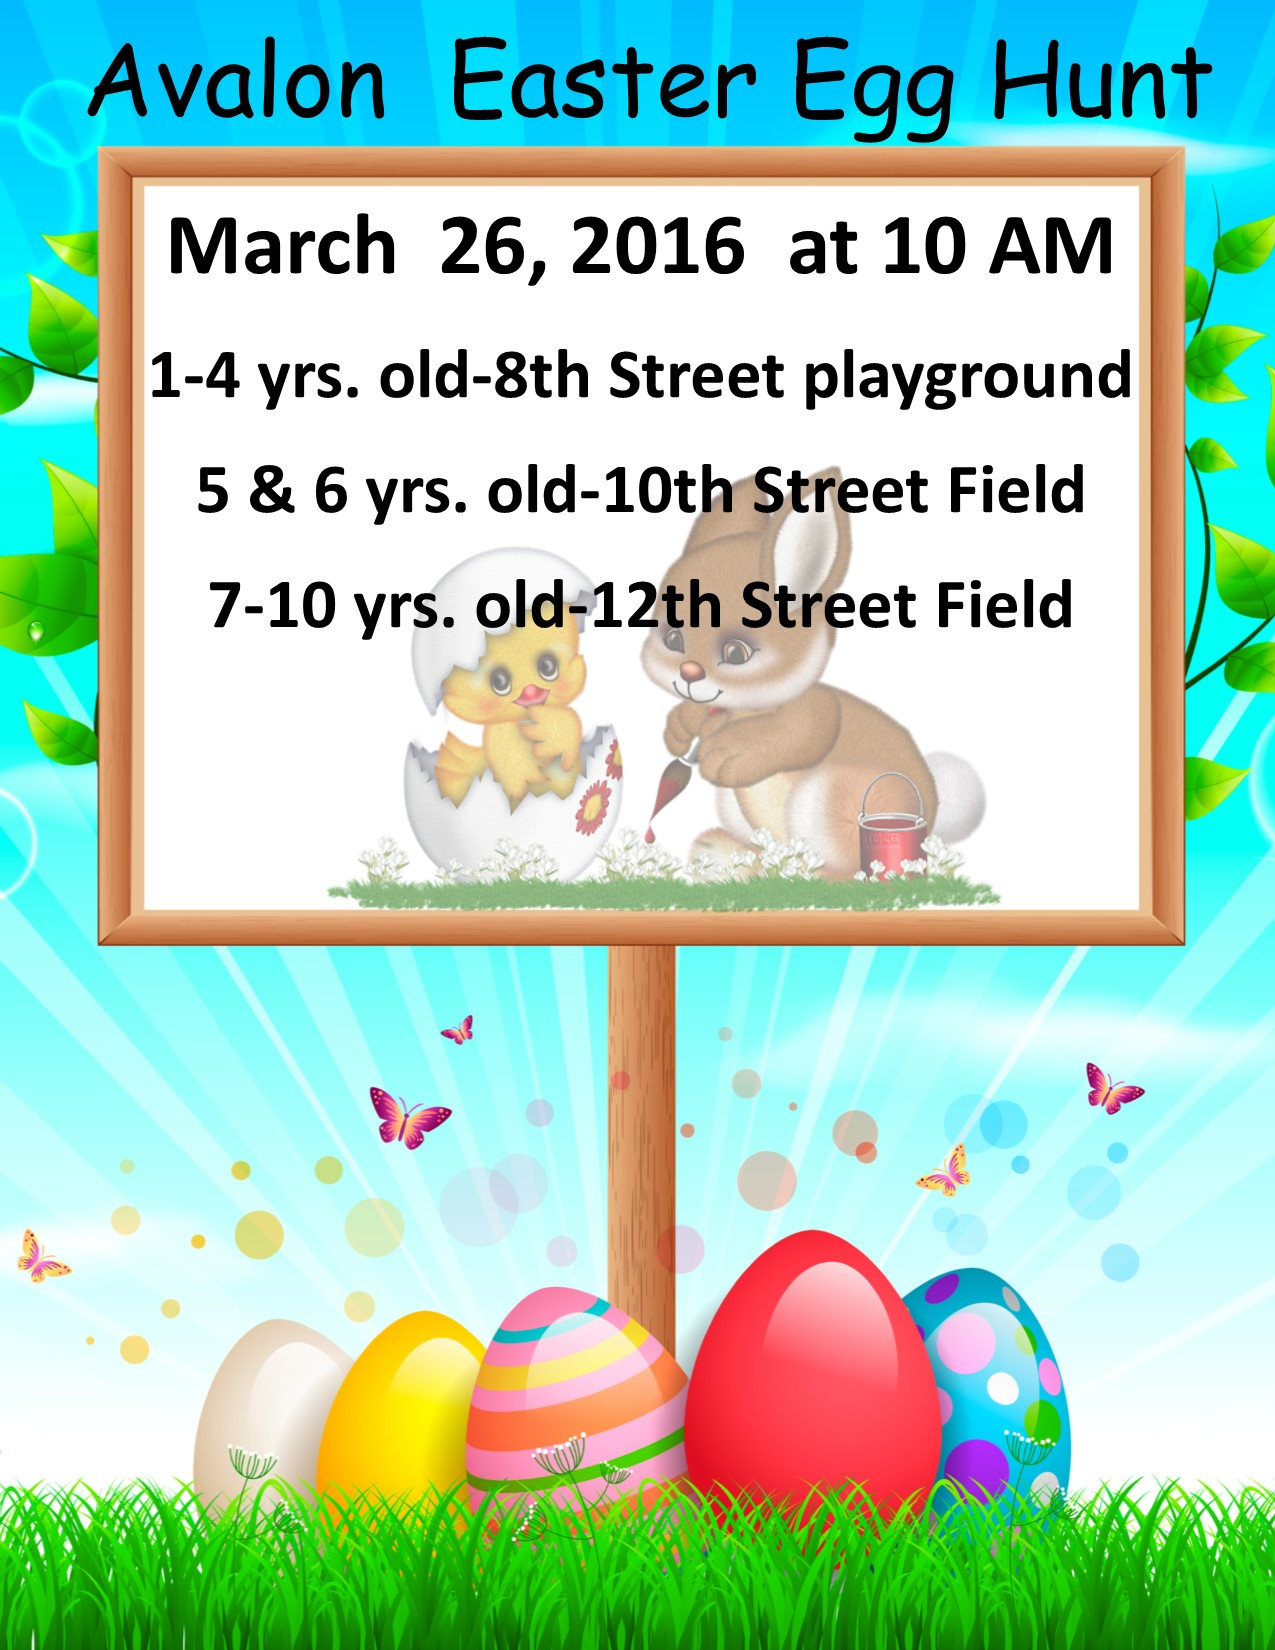 2016 Easter Egg Hunt – Avalon, New Jersey